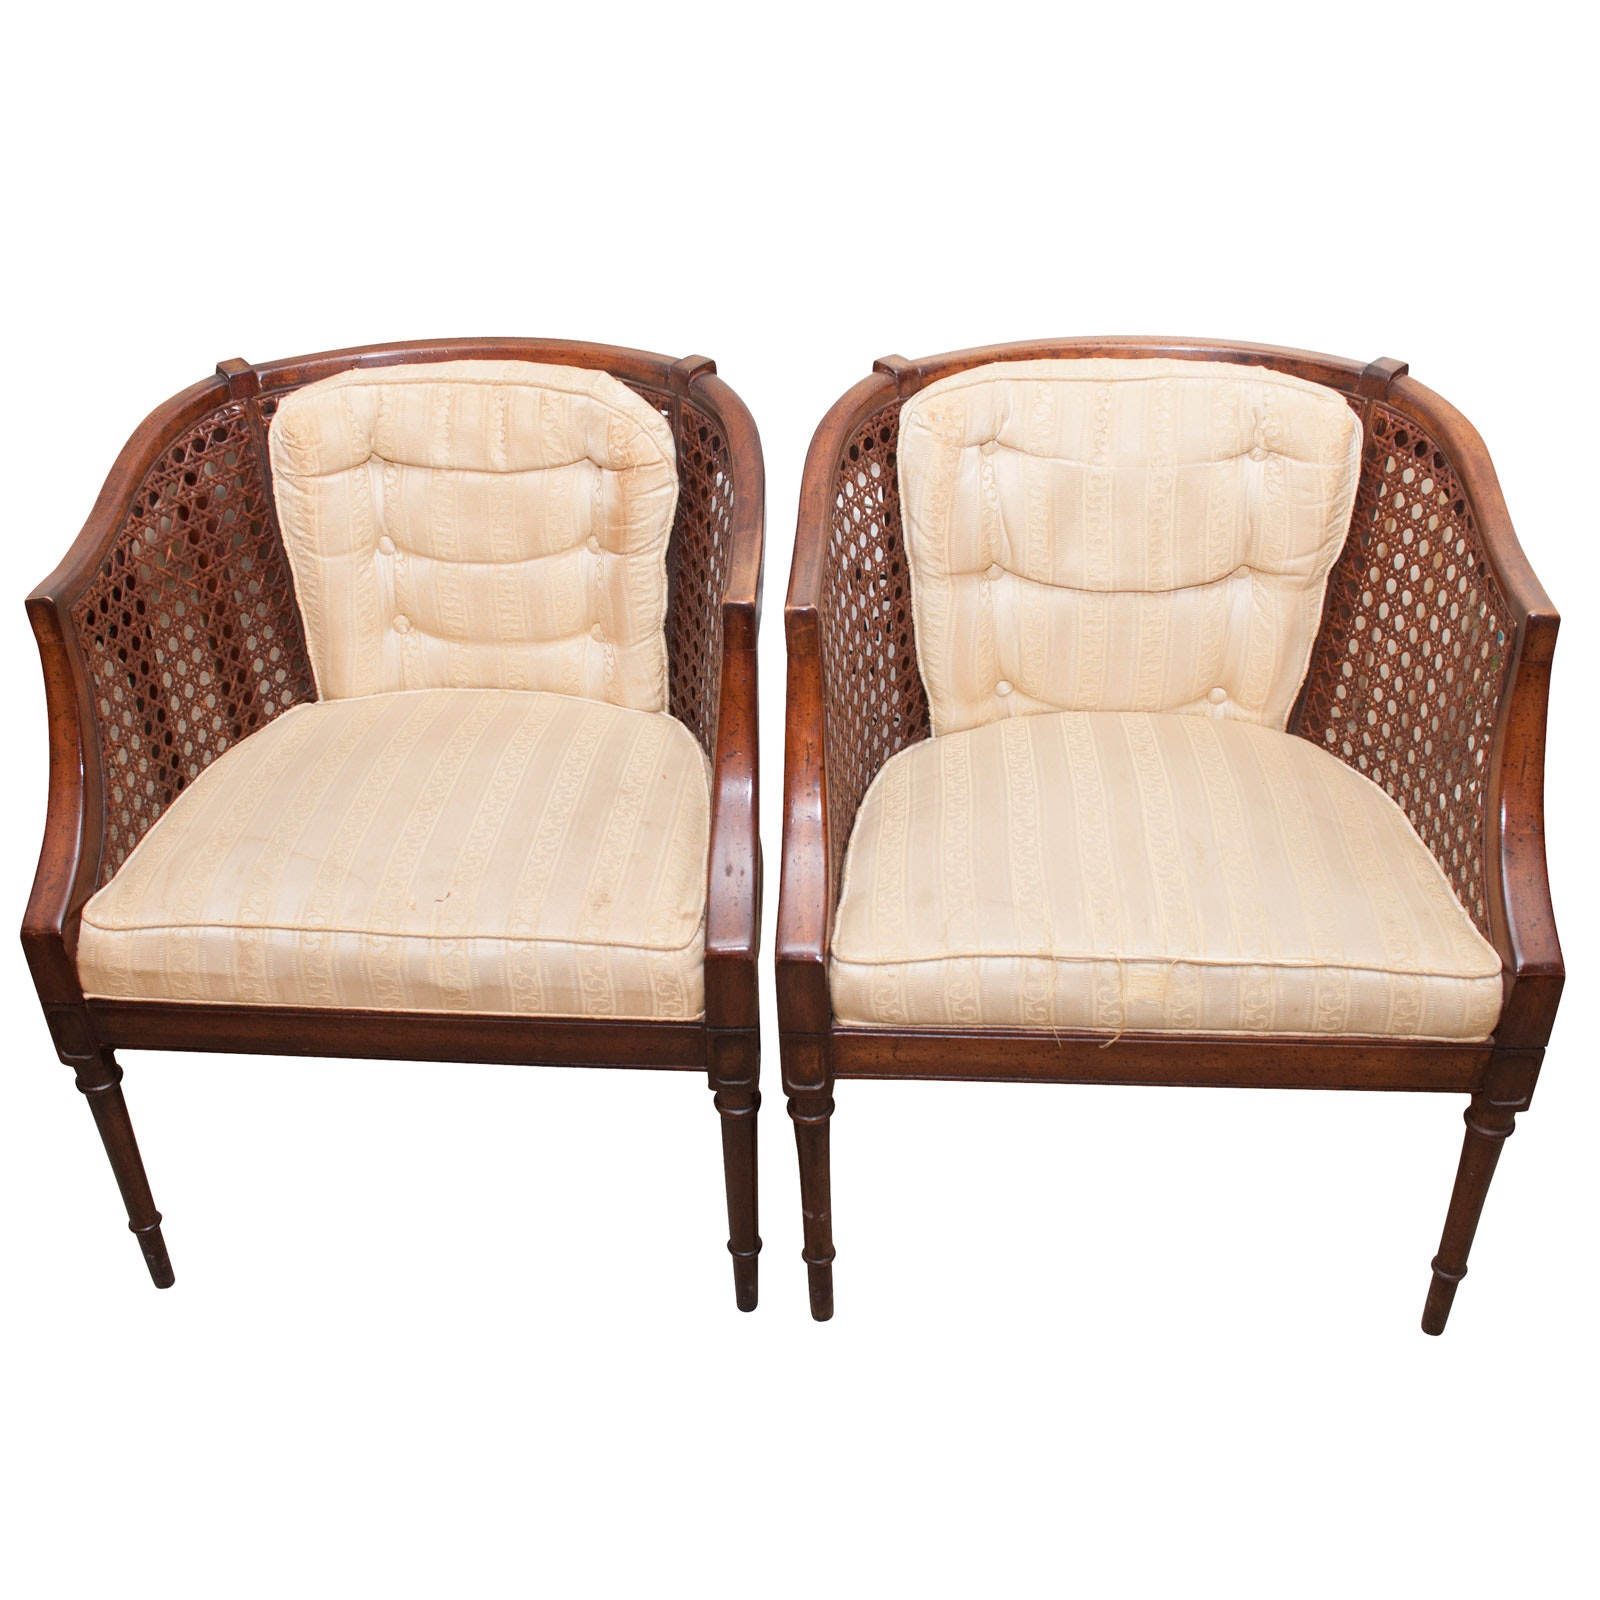 Pair of Louis XV Style Spline Woven Cane Barrel Back Chairs, Mid-20th Century